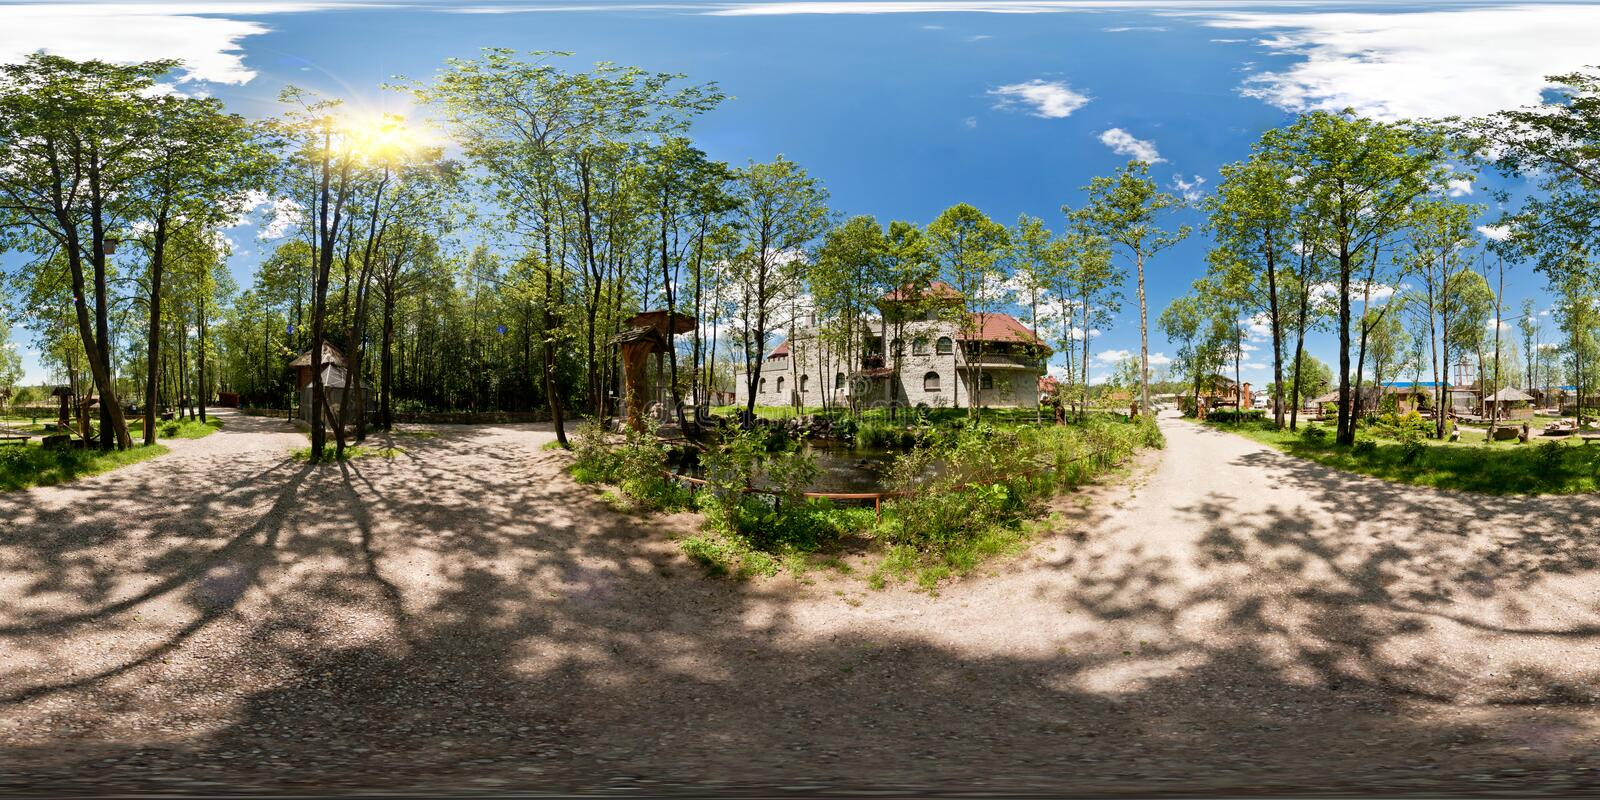 Full 360 degree panorama in equirectangular spherical projection old medieval castle in sunny day, VR content stock images